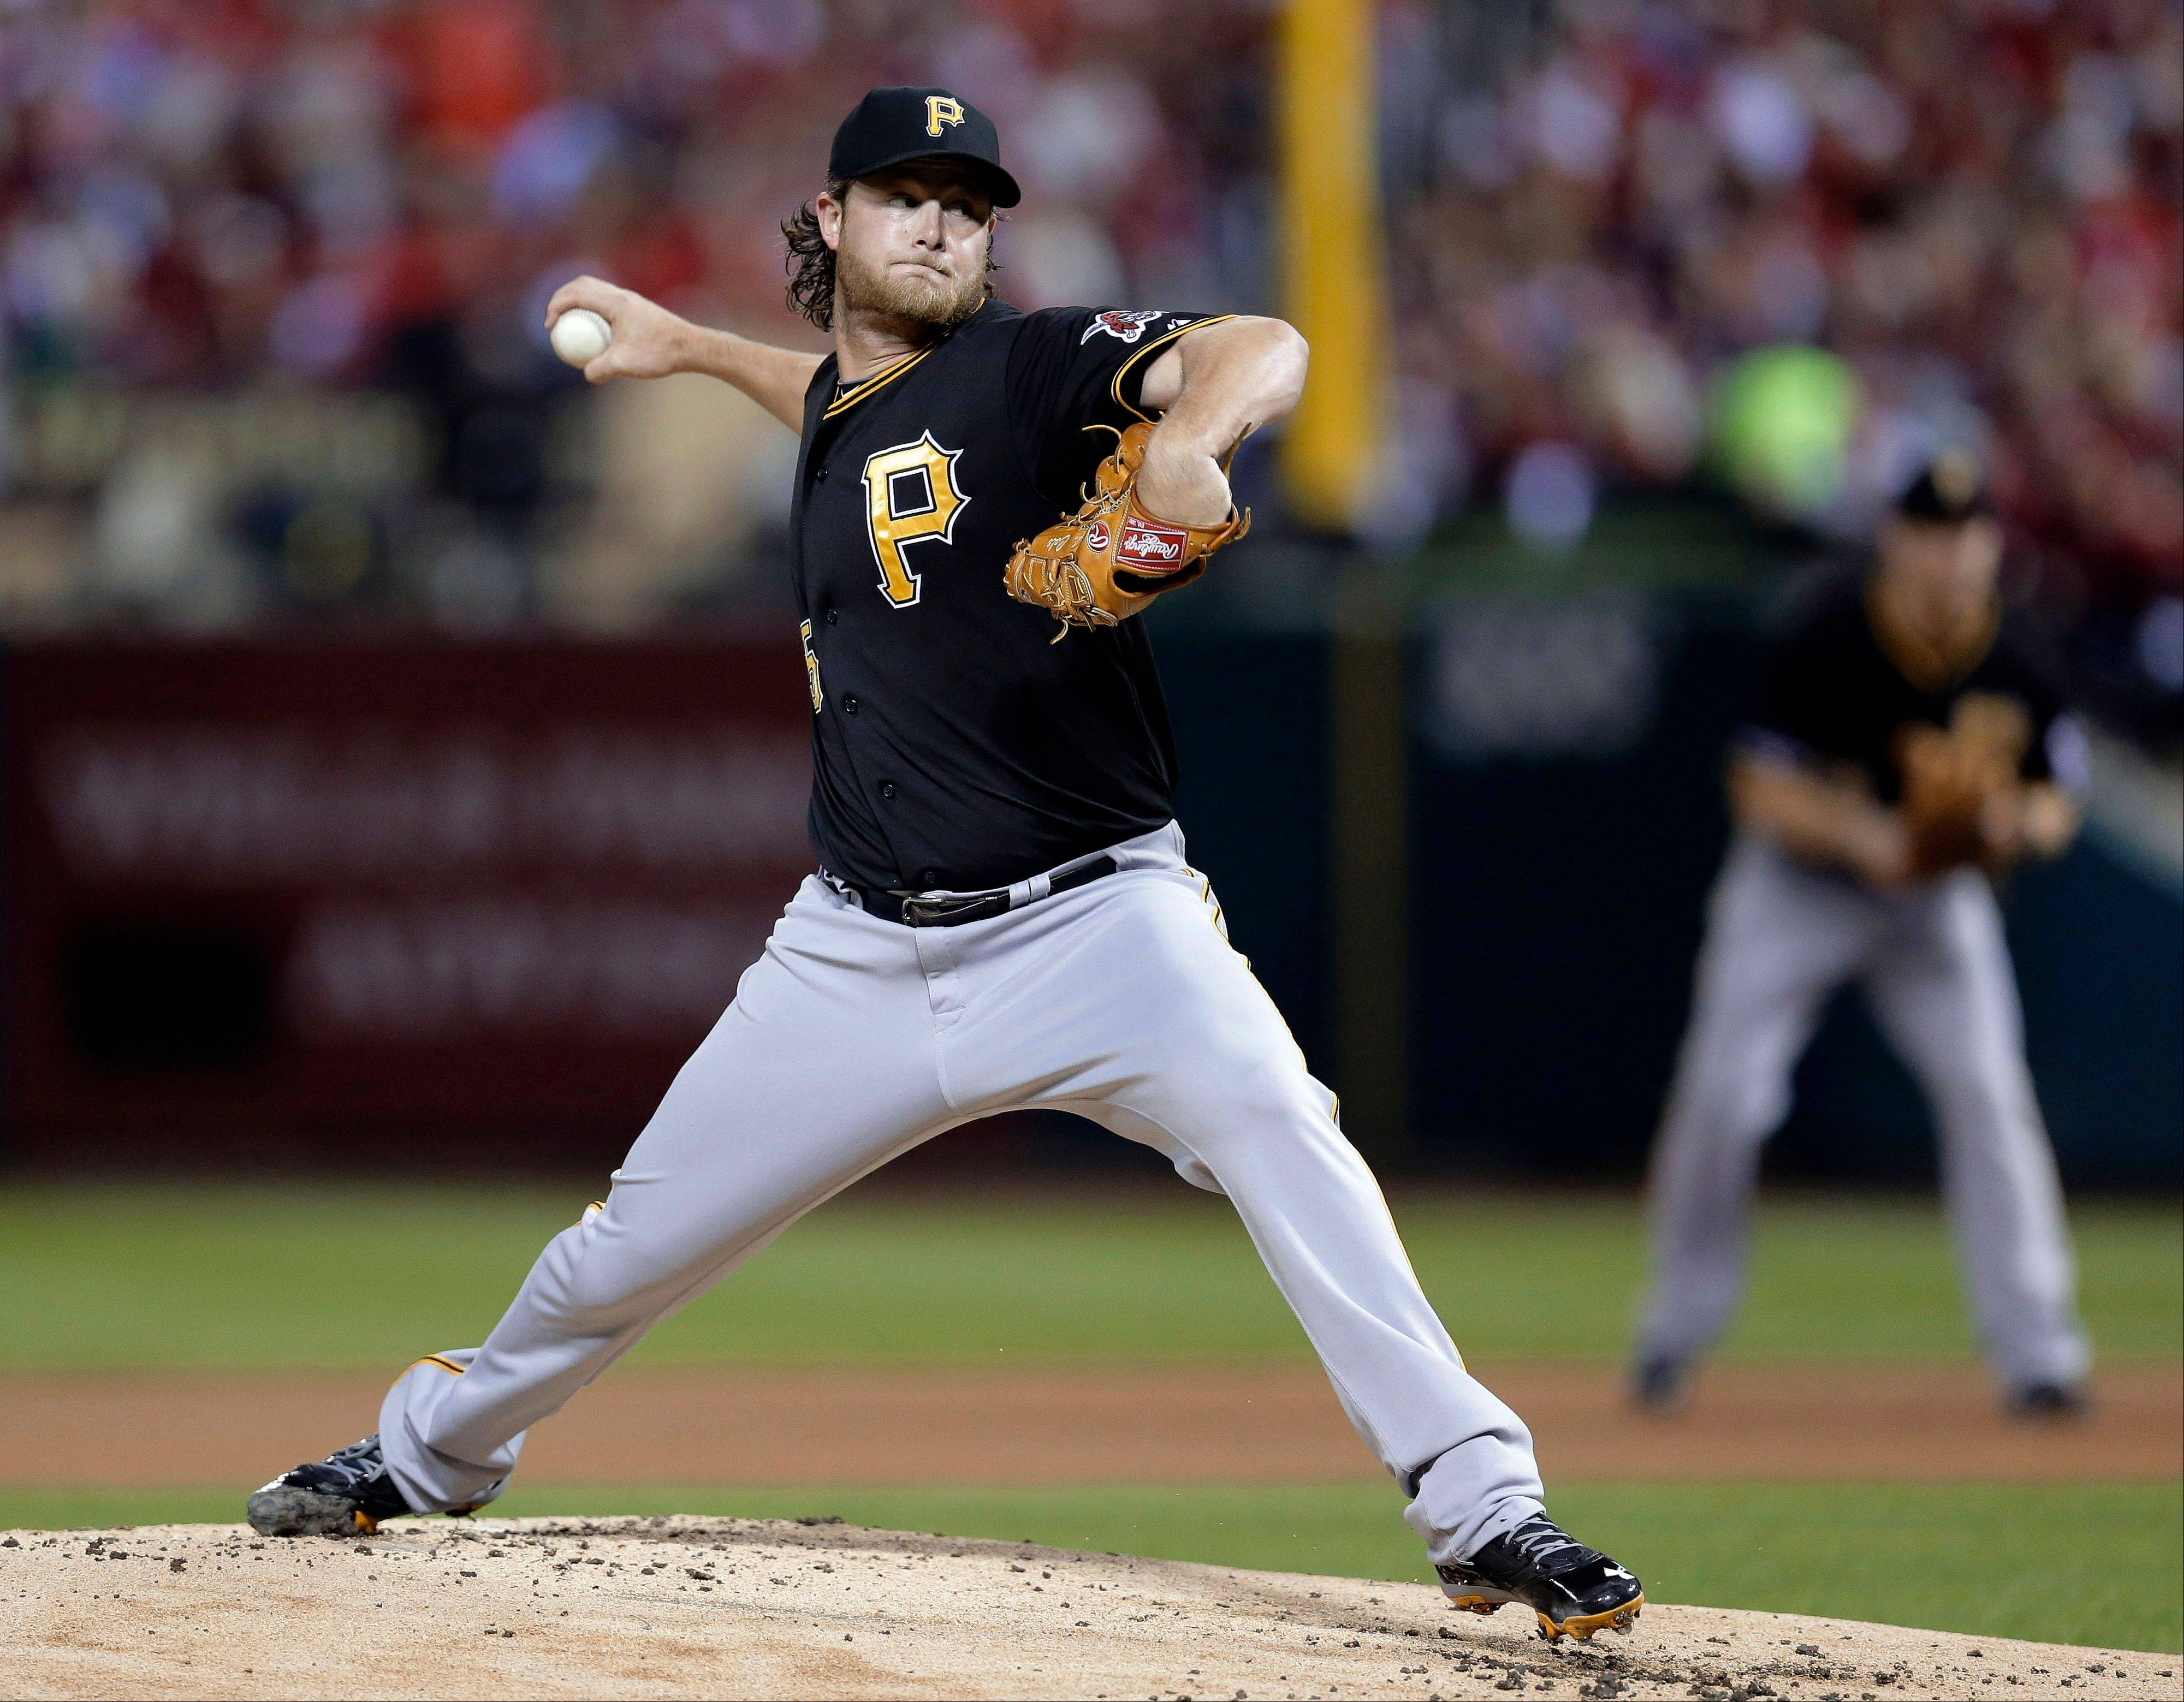 Pirates starter Gerrit Cole pitches against the St. Louis Cardinals in the first inning of Game 5.